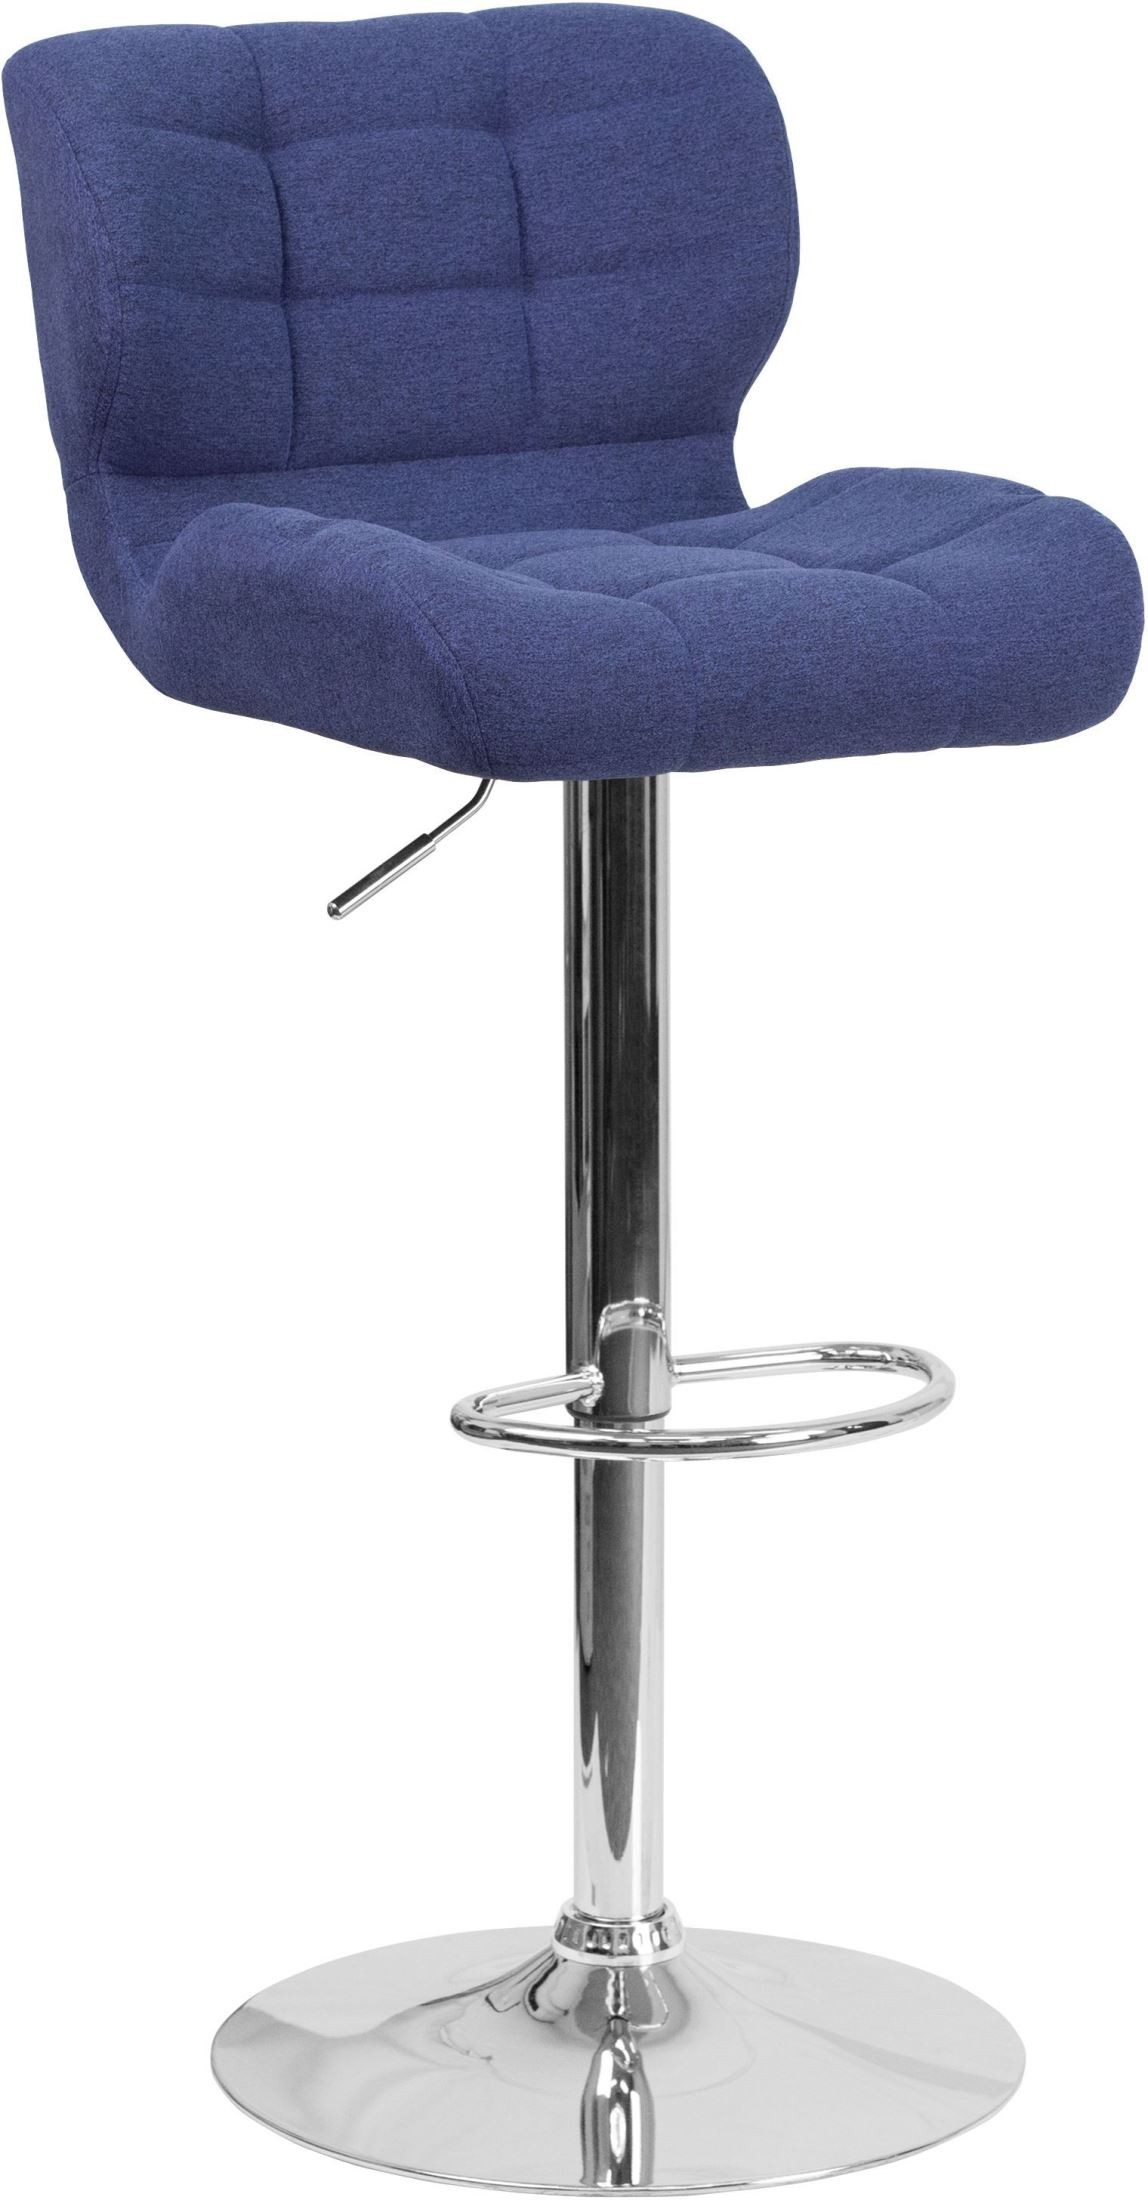 Contemporary Tufted Blue Fabric Adjustable Height Bar